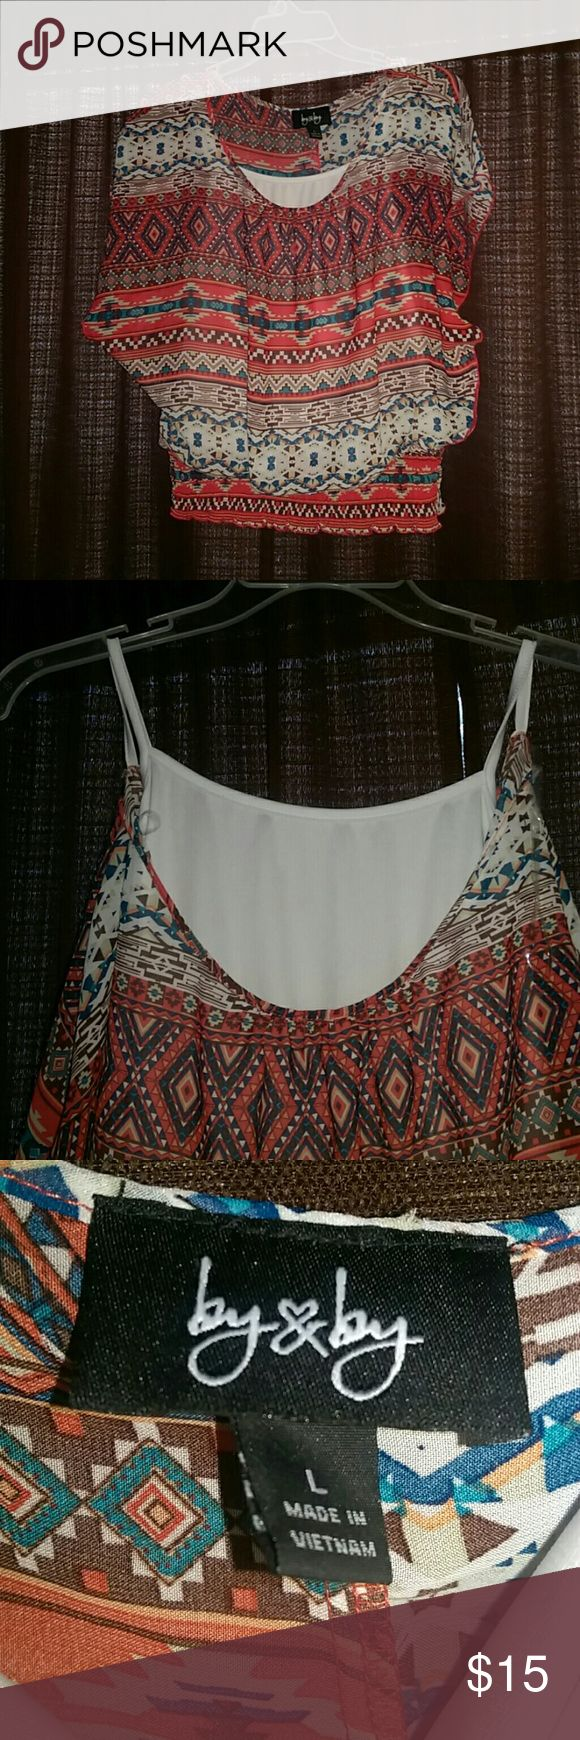 Short sleeved baggy shirt Great condition! Has spaghetti strap shirt sewed inside. By & By Tops Blouses